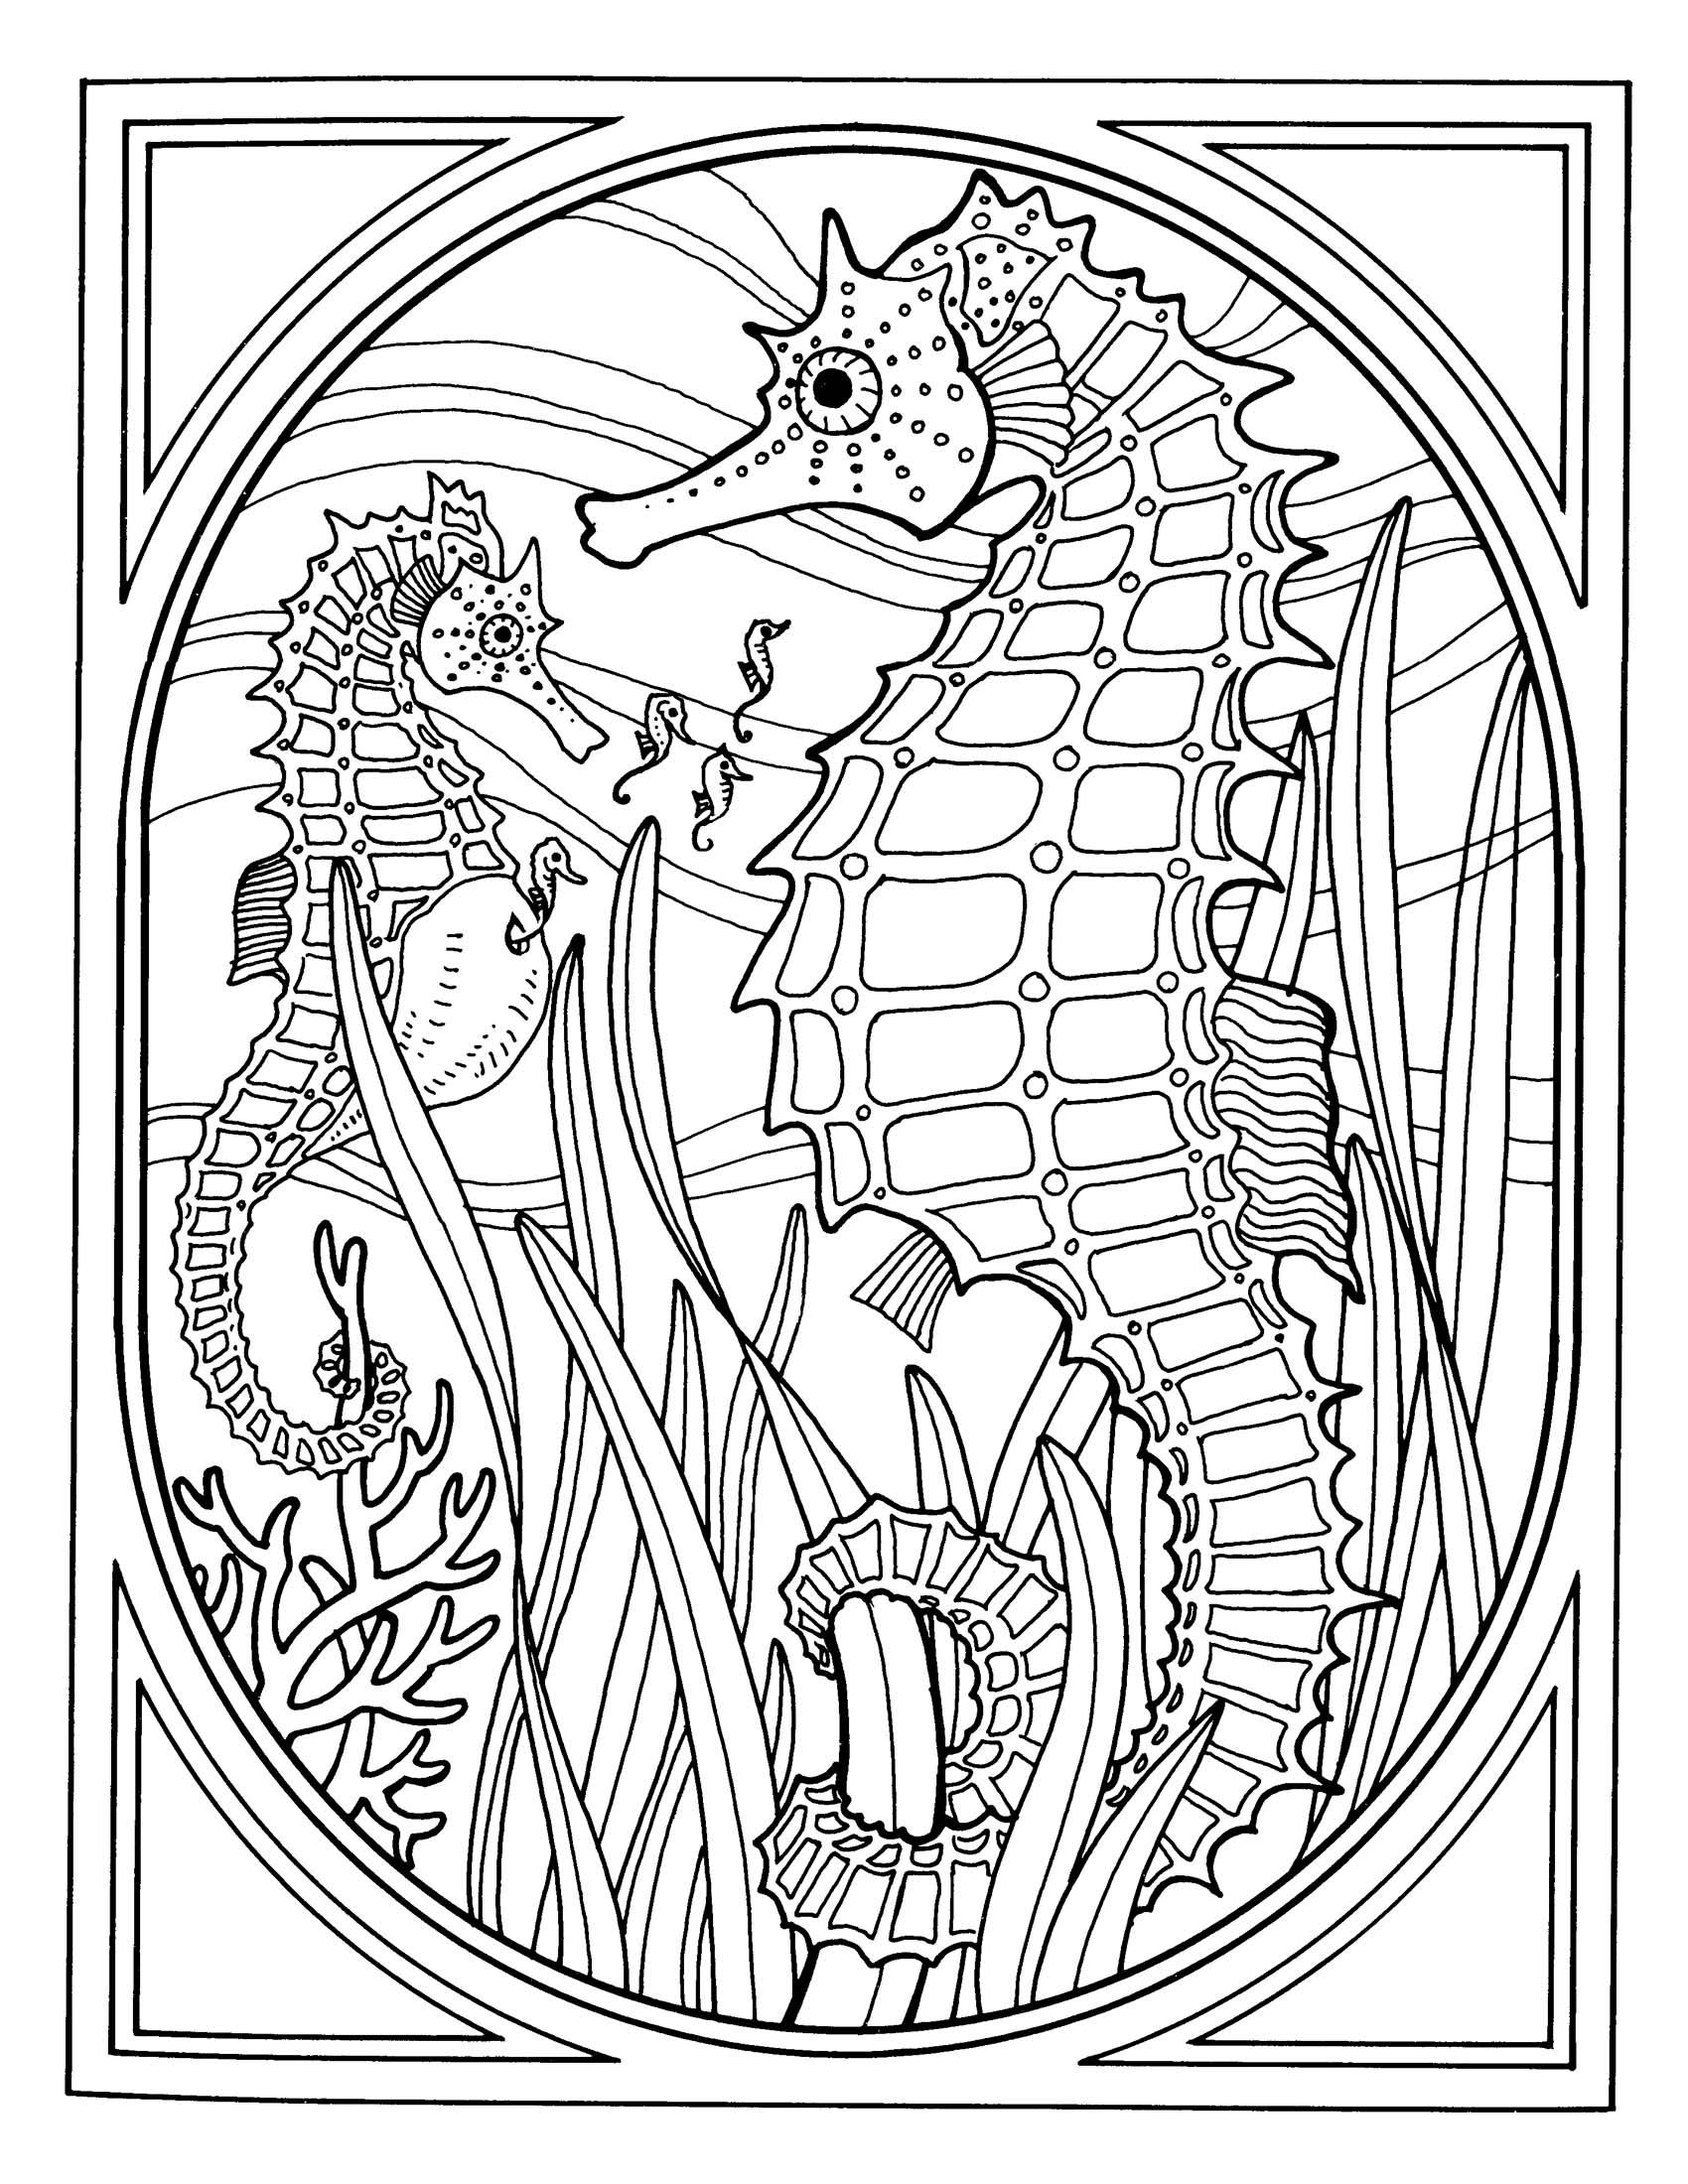 Coloring Pages: Adult Coloring Pages Rosette Intricate Patterns ...